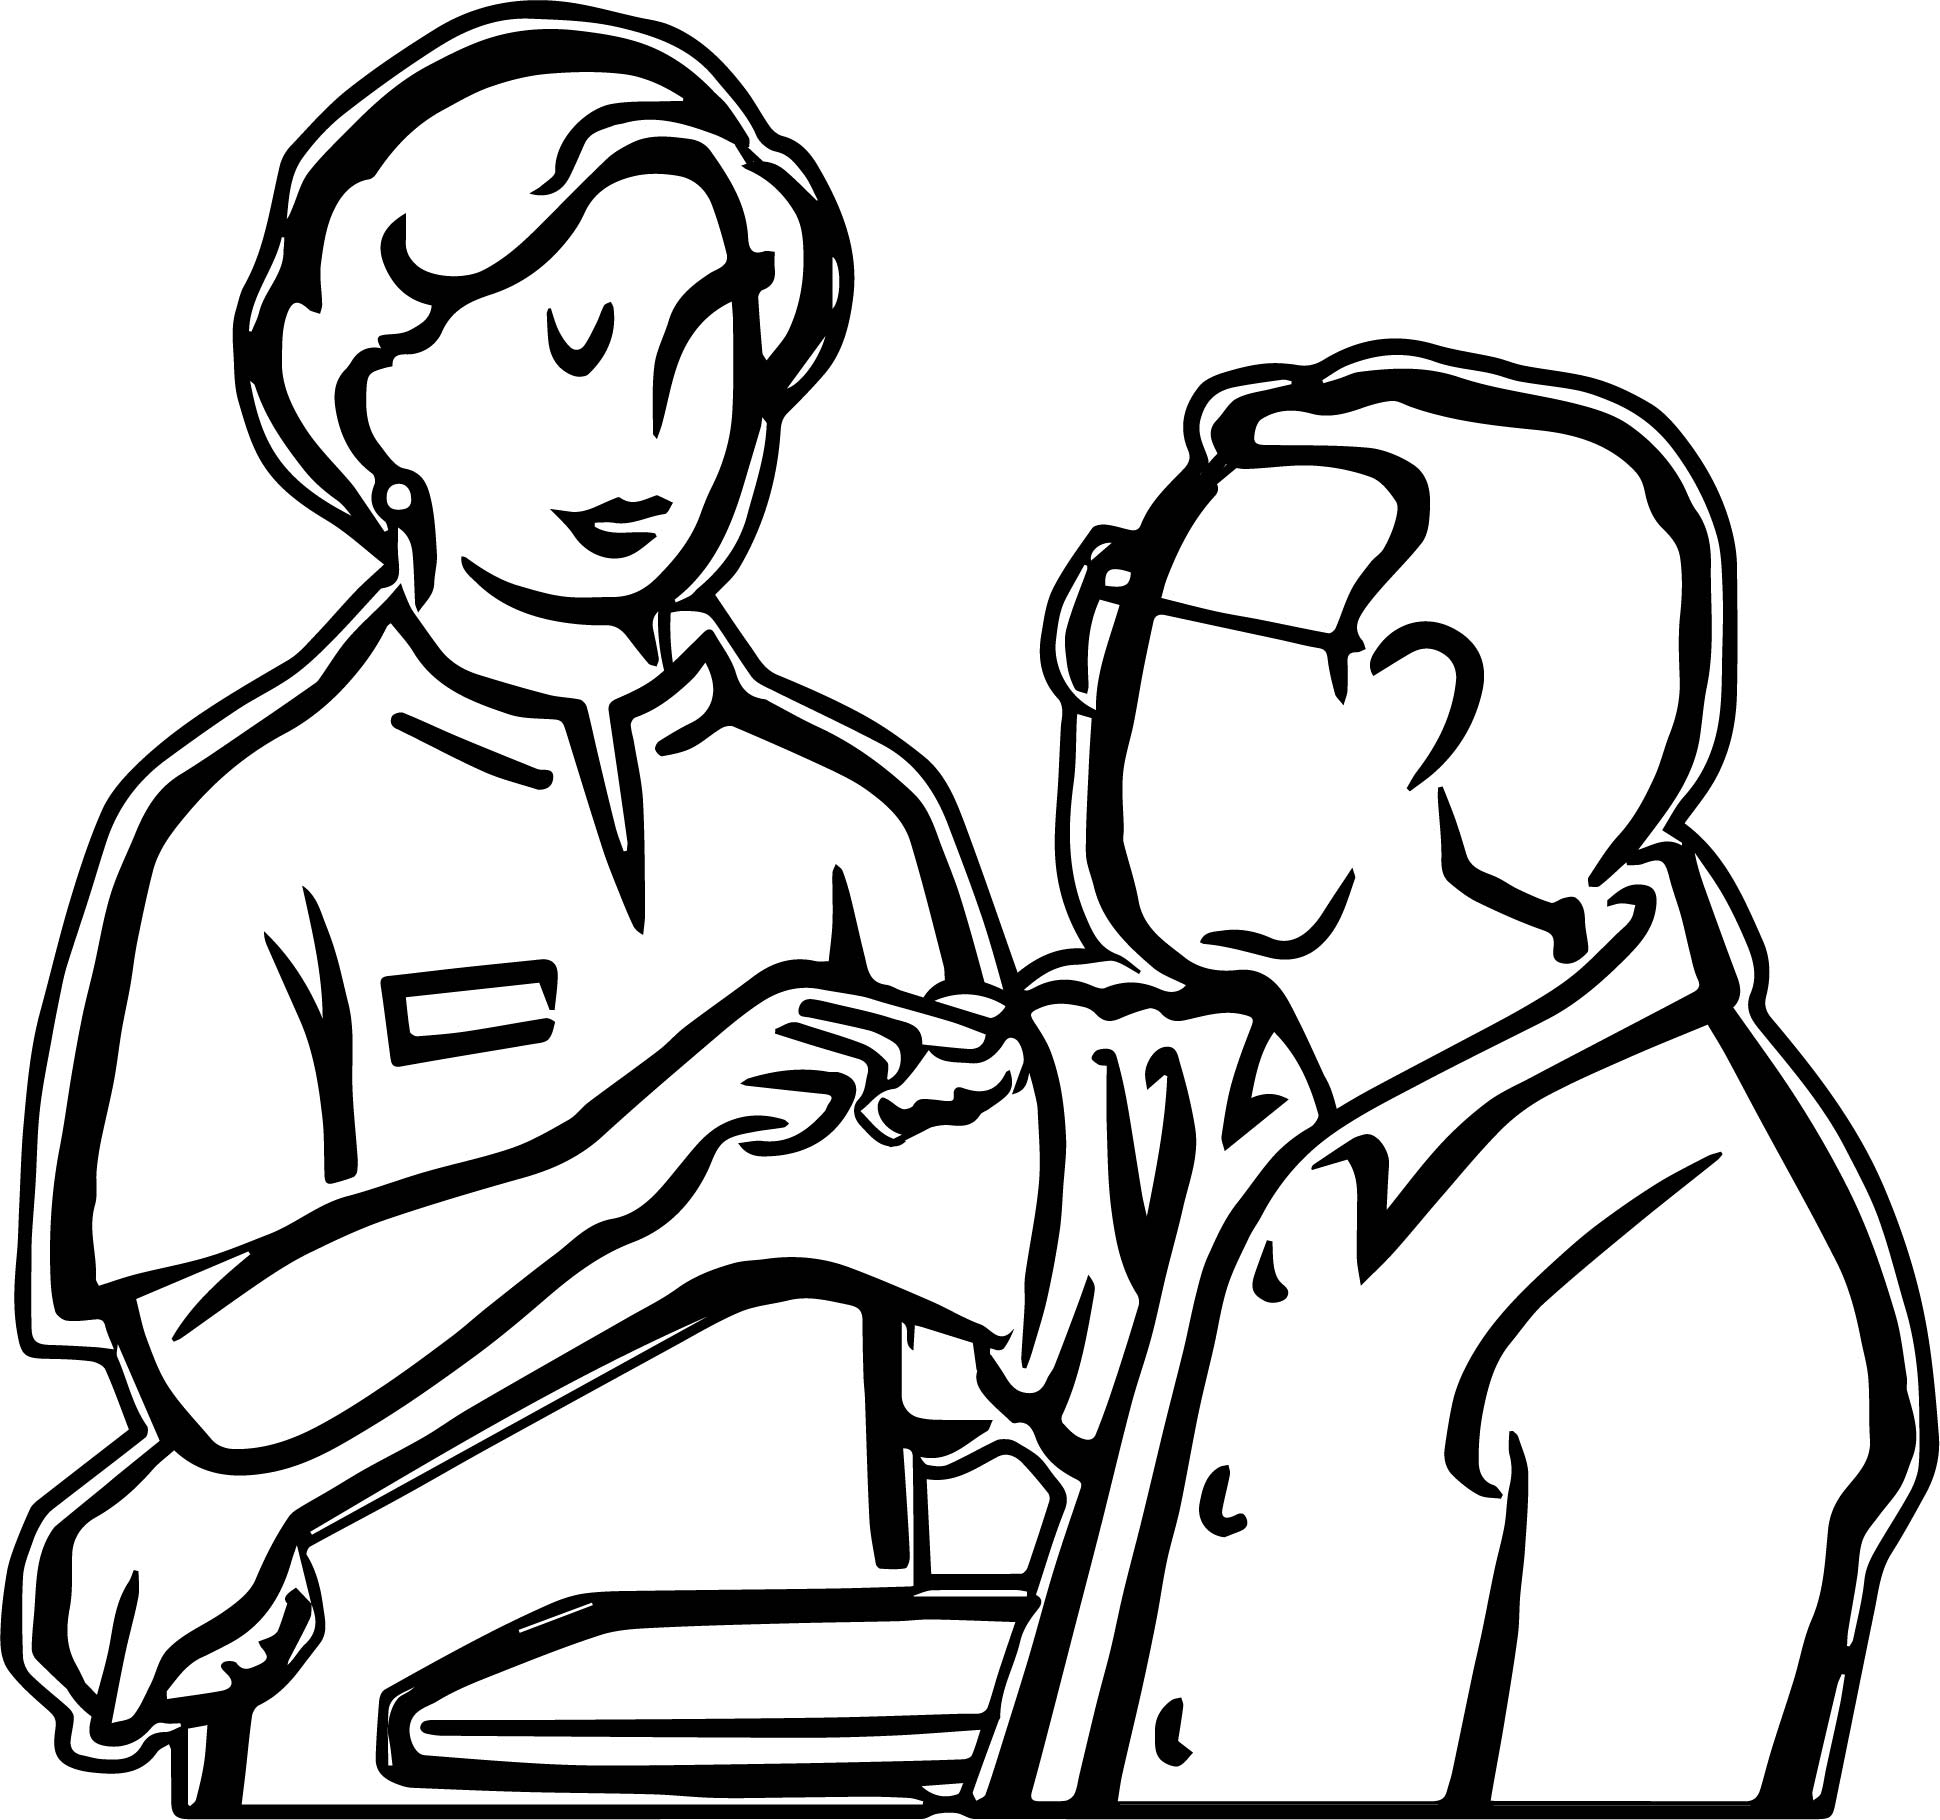 Doctor Adult Injection Coloring Page